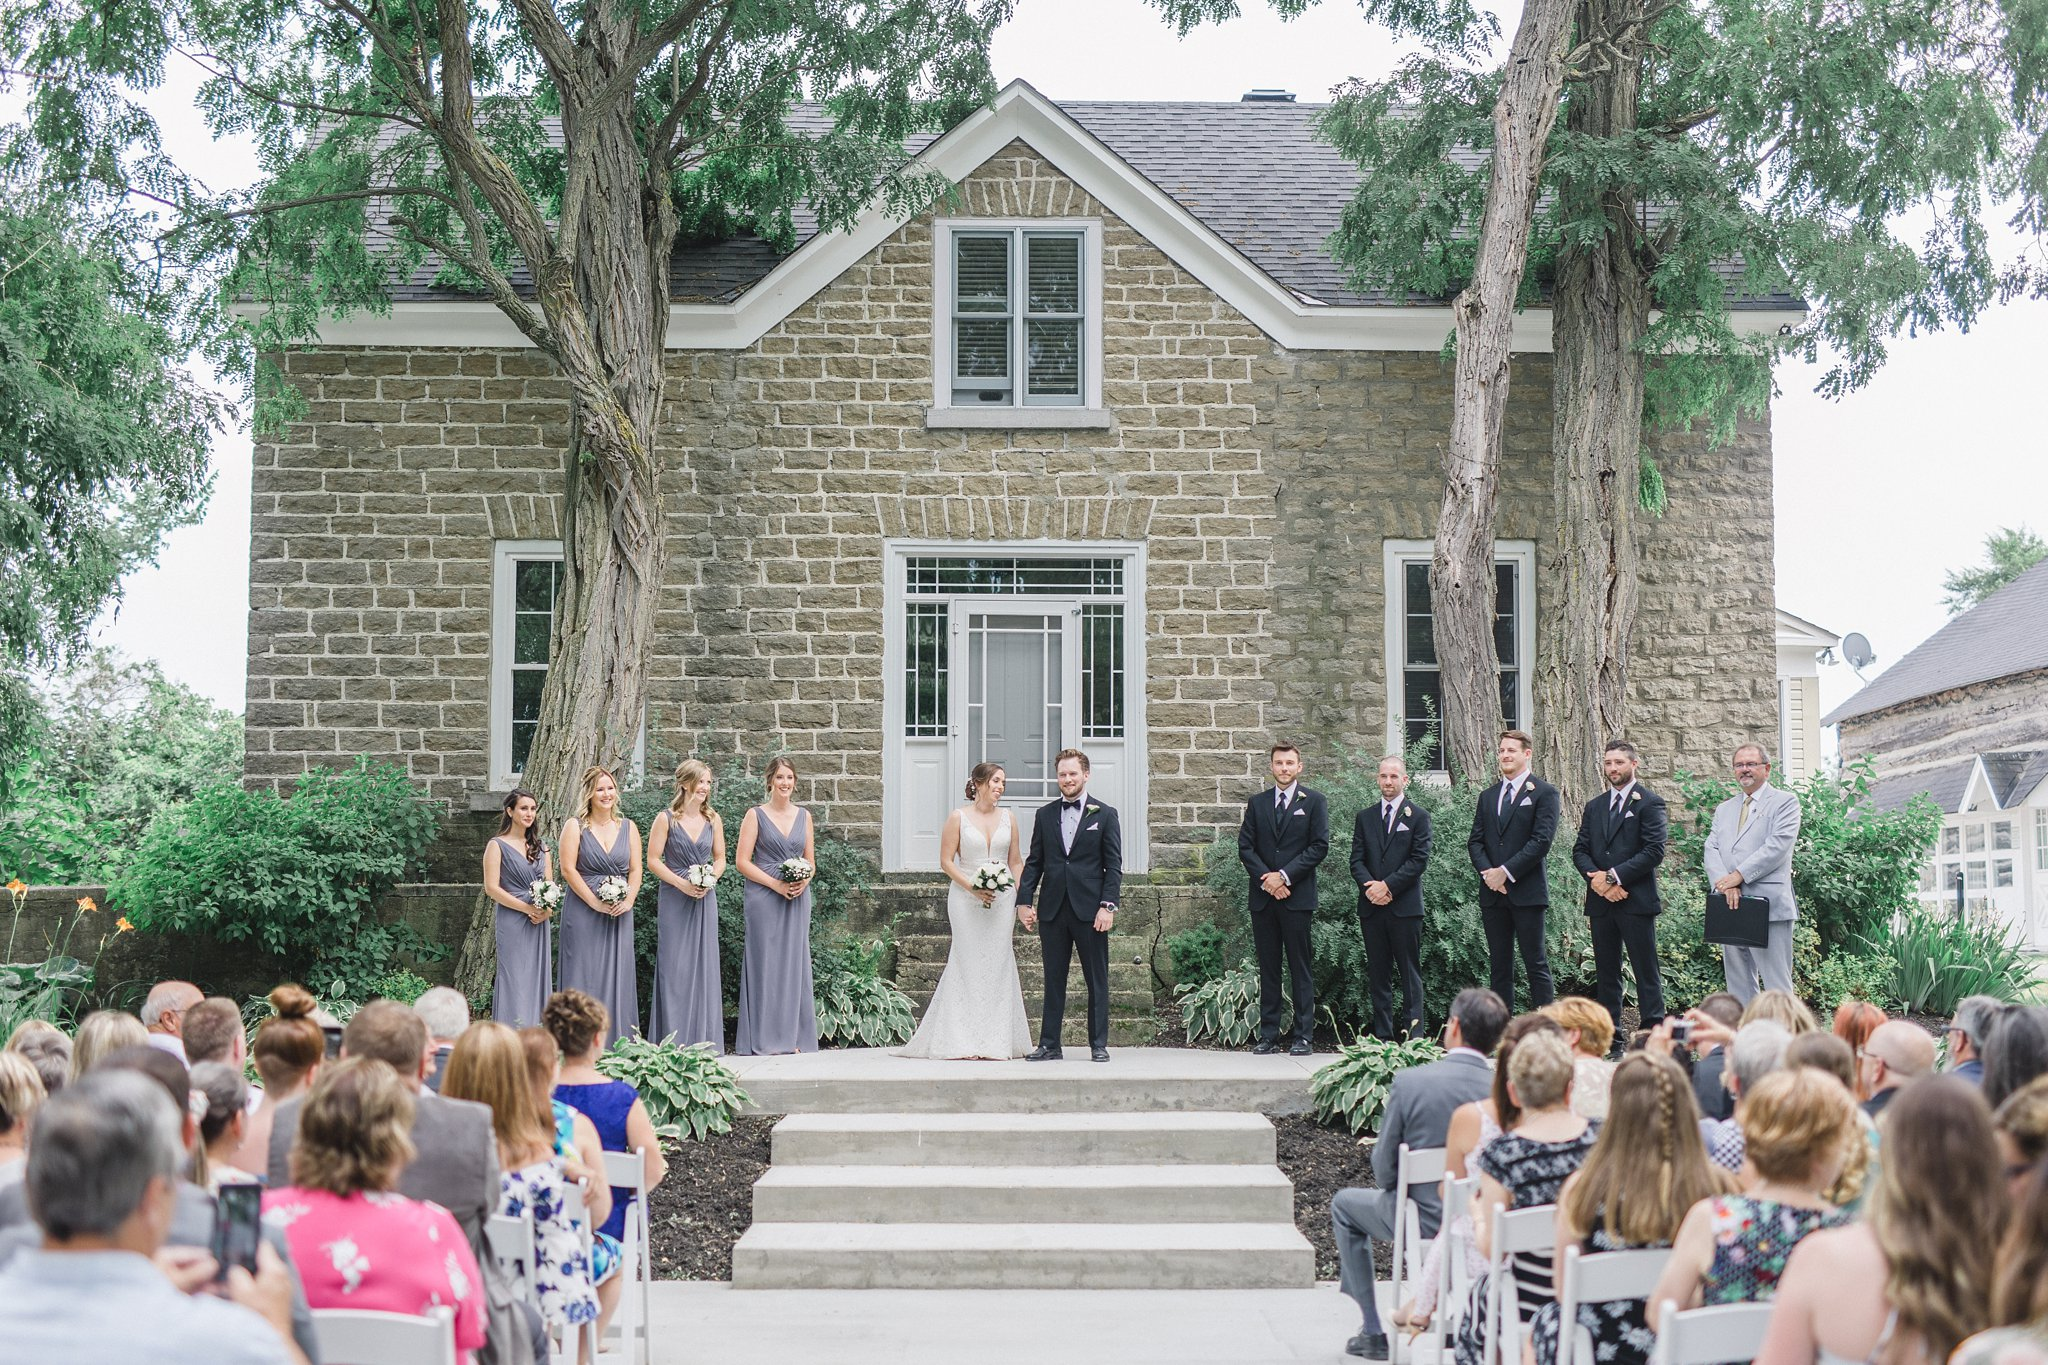 Wedding ceremony married at Stonefields, Amy Pinder Photography